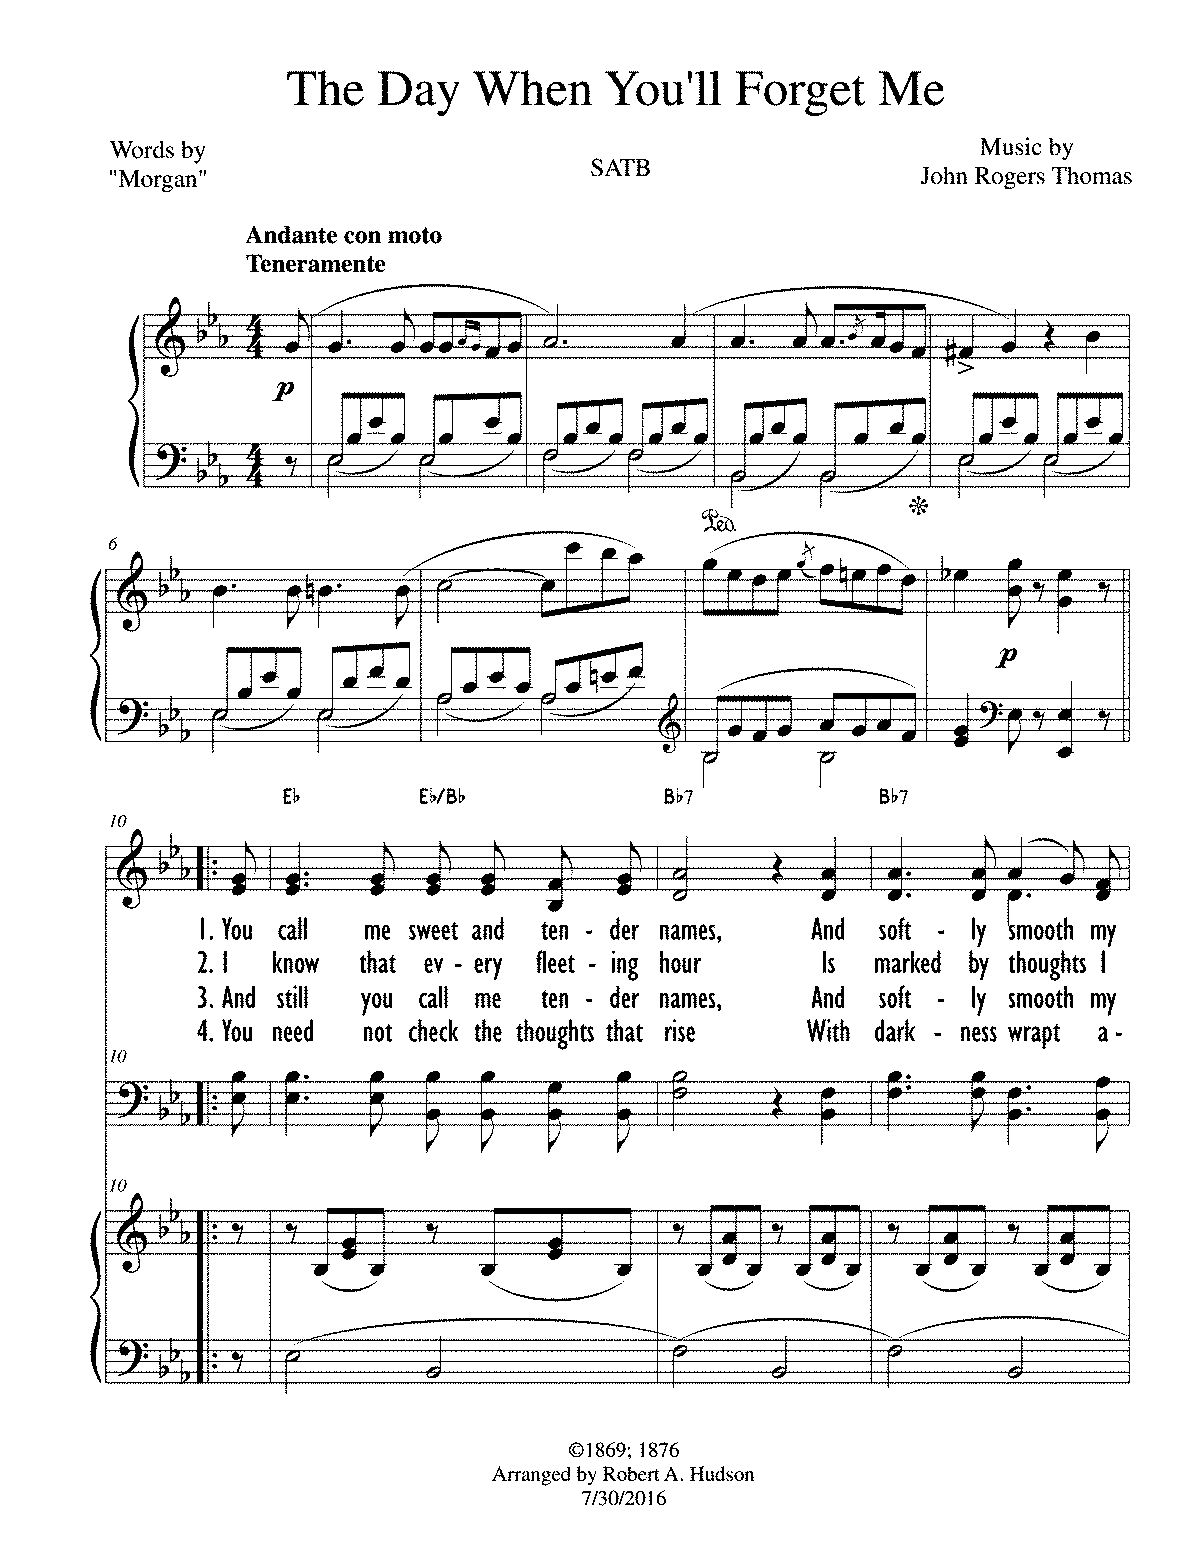 PMLP700514-Day When You'll Forget Me The SATB.pdf